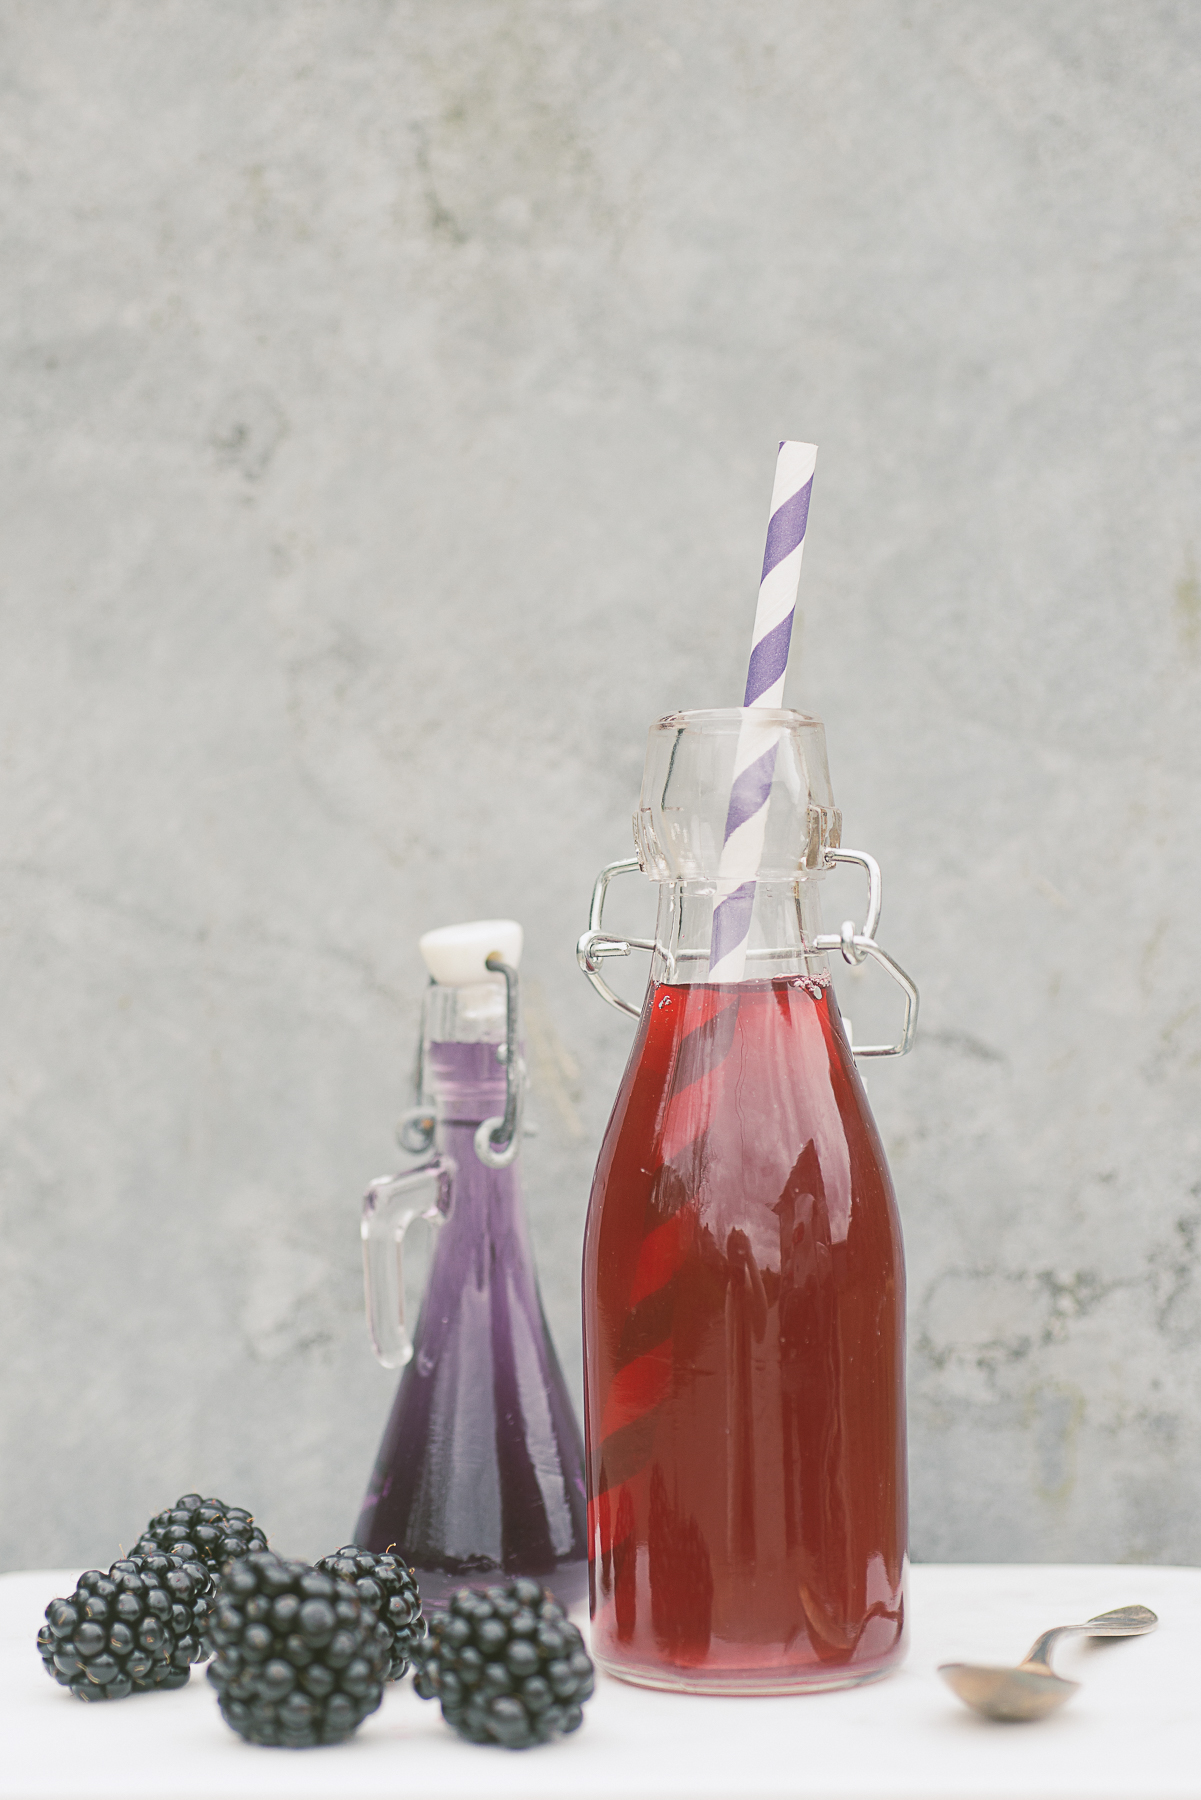 blackberry lavendel limonade.jpg